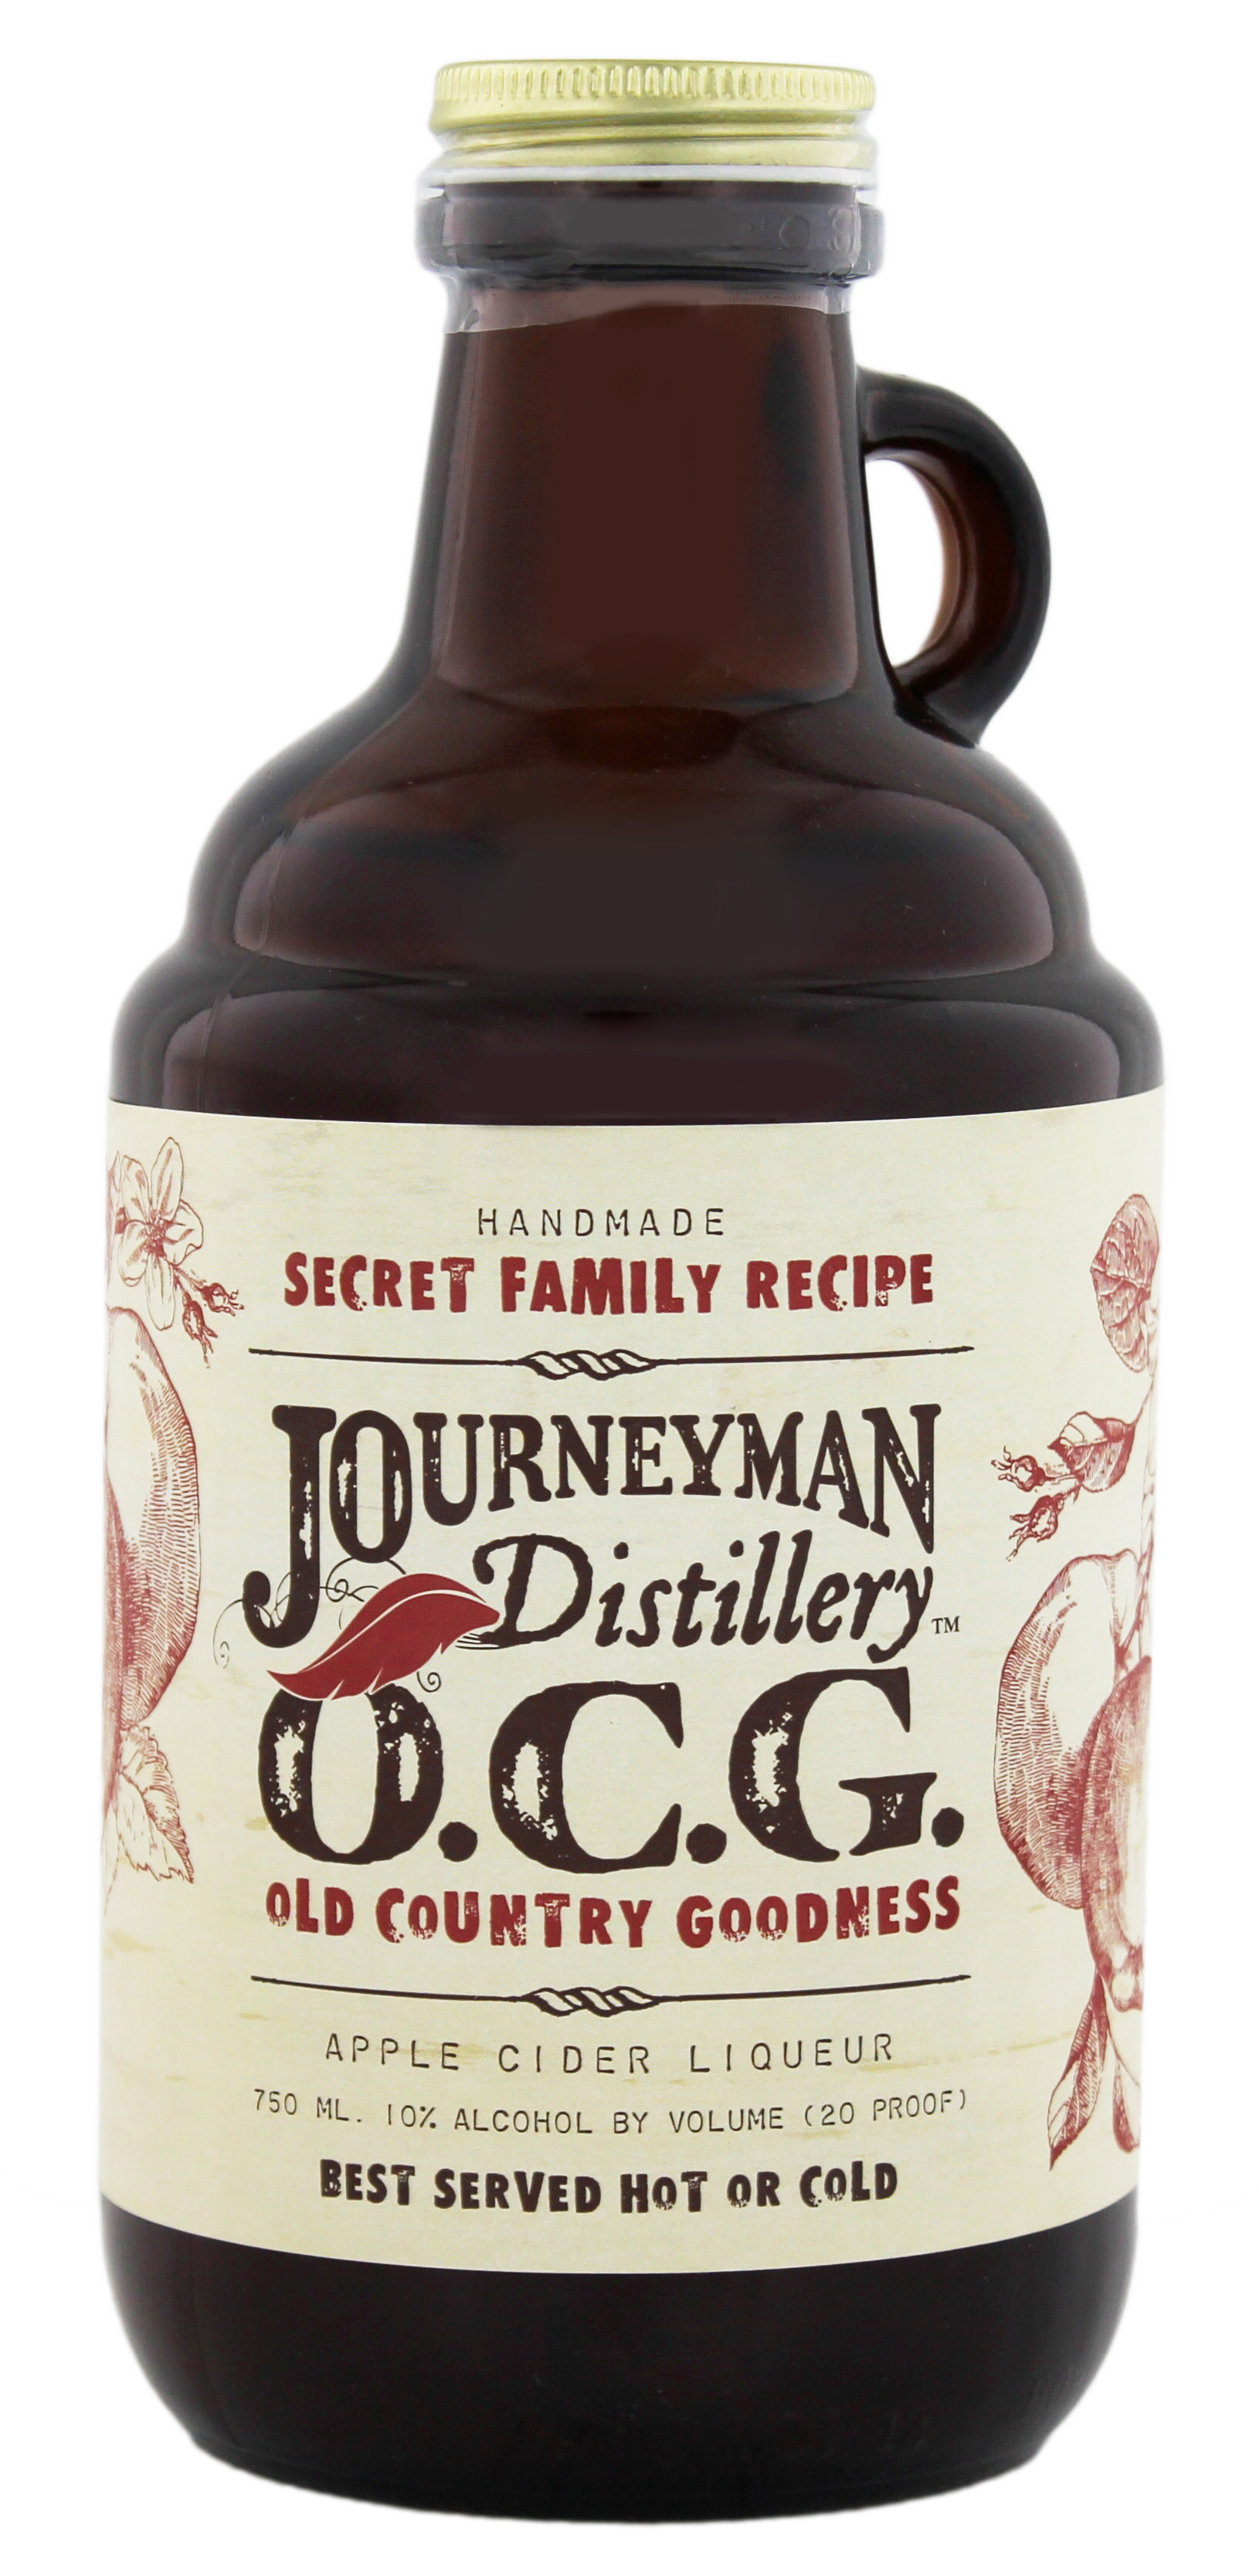 journeyman old country goodness apple cider liqueur jetzt kaufen im drinkology online shop. Black Bedroom Furniture Sets. Home Design Ideas